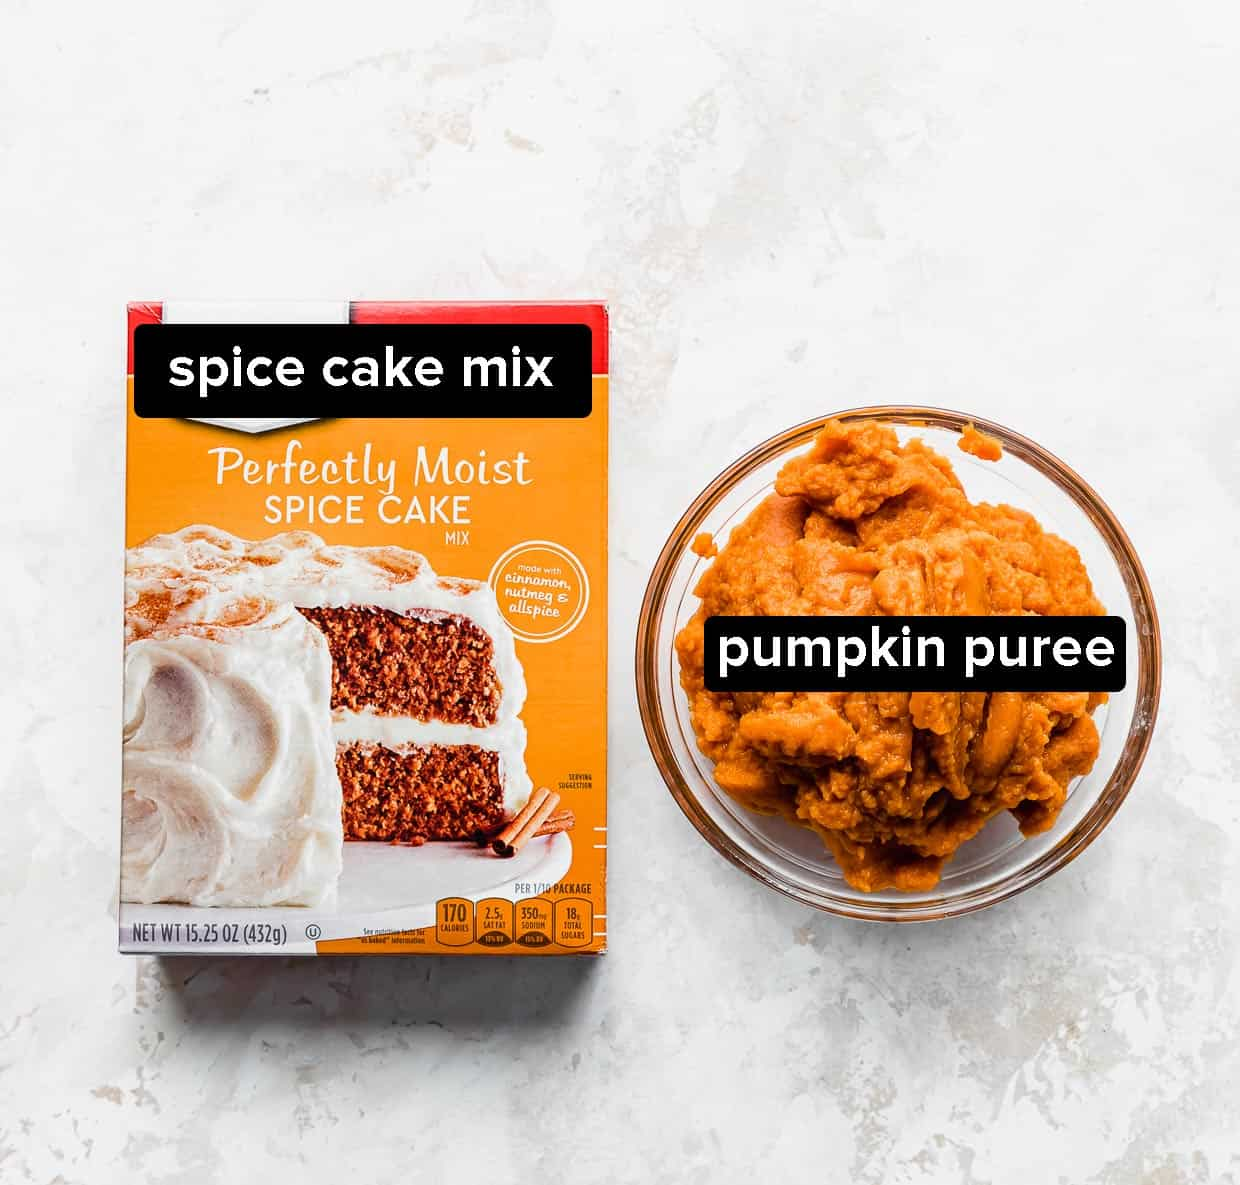 A box of spice cake mix and a bowl of pumpkin puree on a cream textured background.